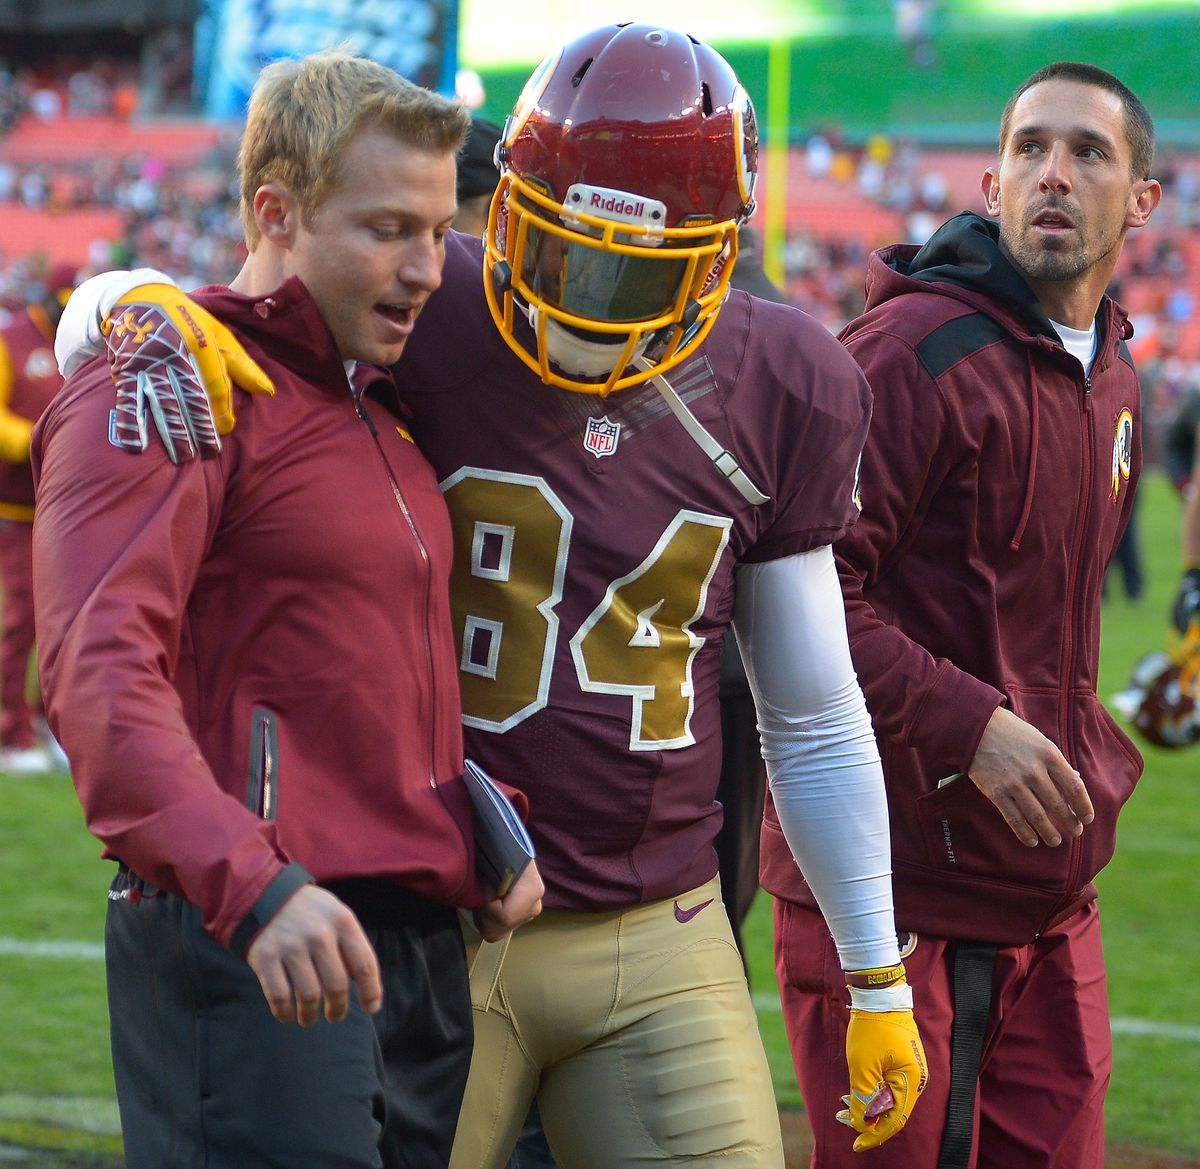 the Washington Redskins play the San Diego Chargers